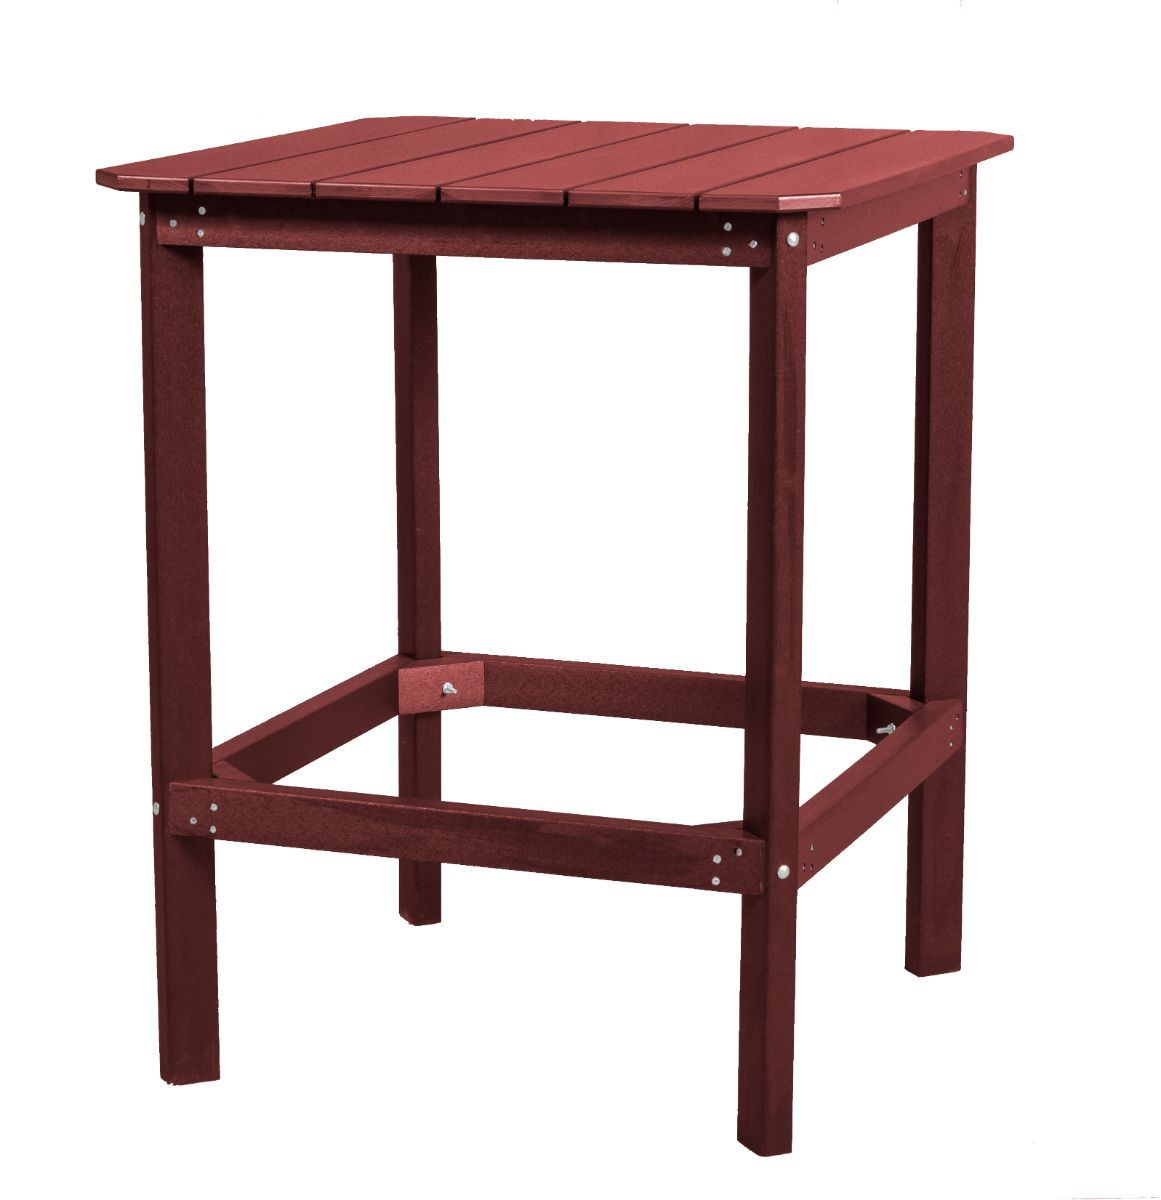 Cherry Wood Panama High Outdoor Dining Table